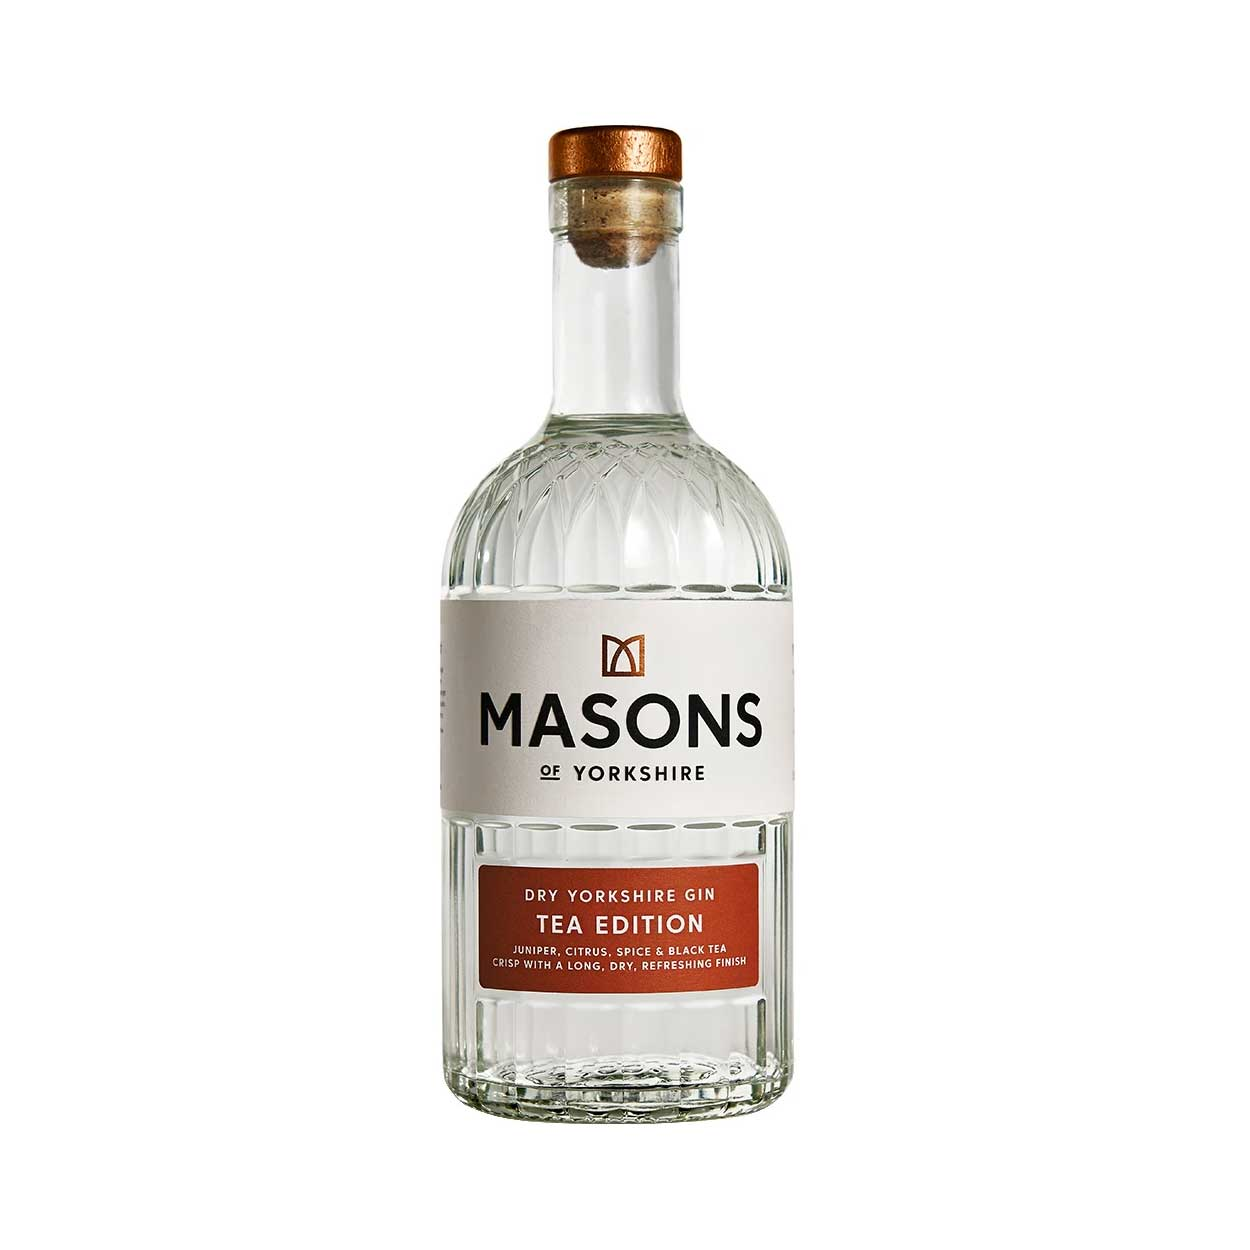 Masons of Yorkshire Tea Edition Gin Bottle